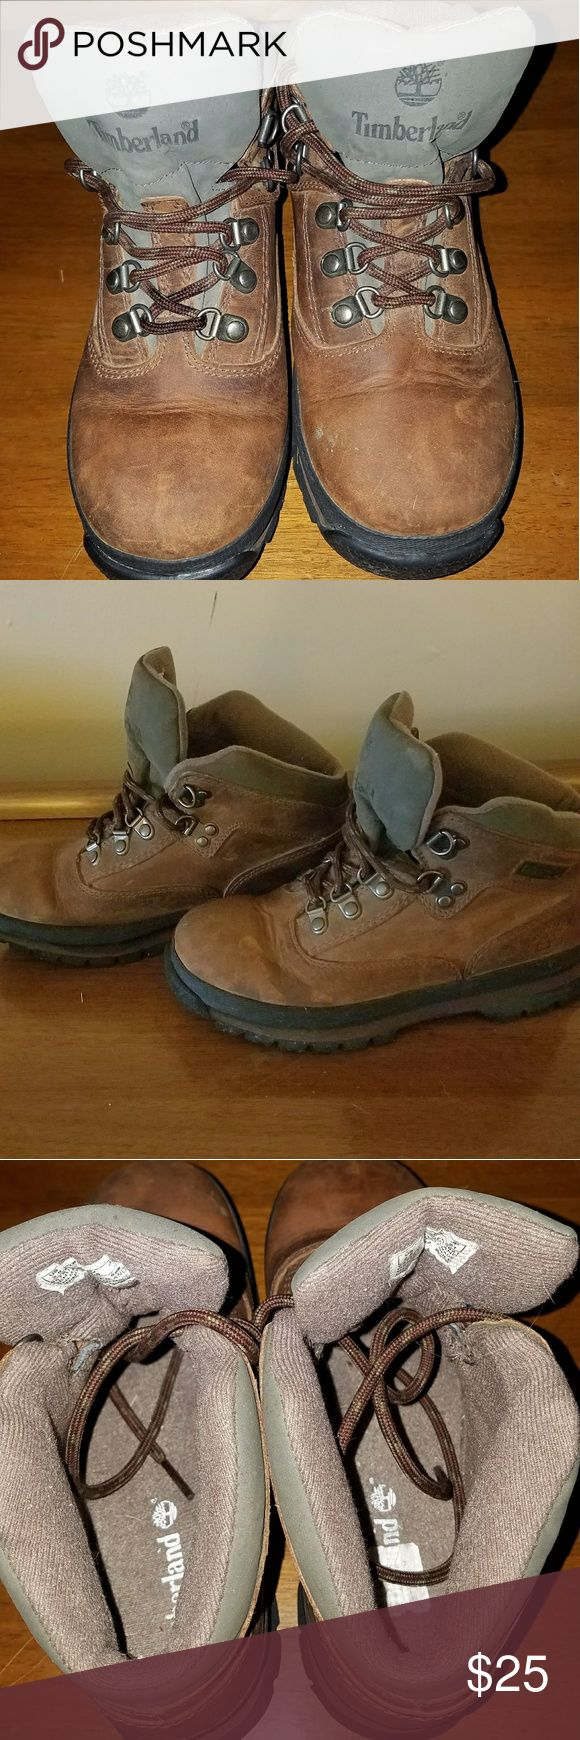 Boy's Hiking Boots Great pair of boots!!  Only worn a handful of times.  You can still see the price label on the inside!  My son outgrew them before he could get any wear out of them. Timberland Shoes Boots